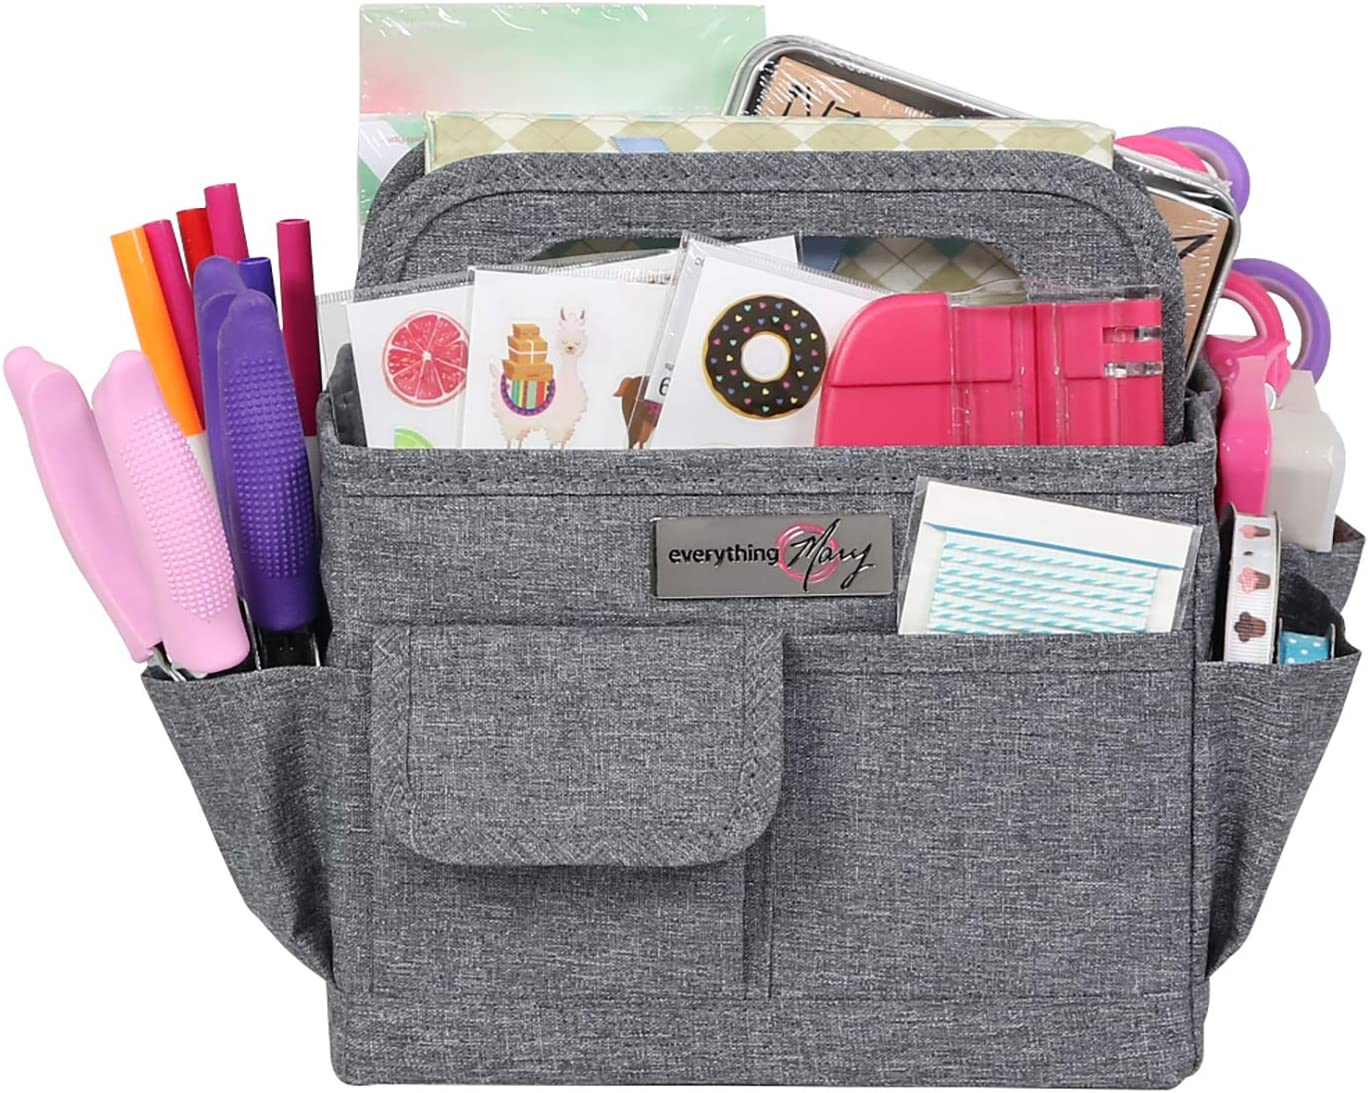 Everything Mary Collapsible Craft Caddy, Grey - Art Storage for Supplies & Crafts - Supply Organizers Tote for School Classroom, Office, and Home - Organization for Makeup & Nurses